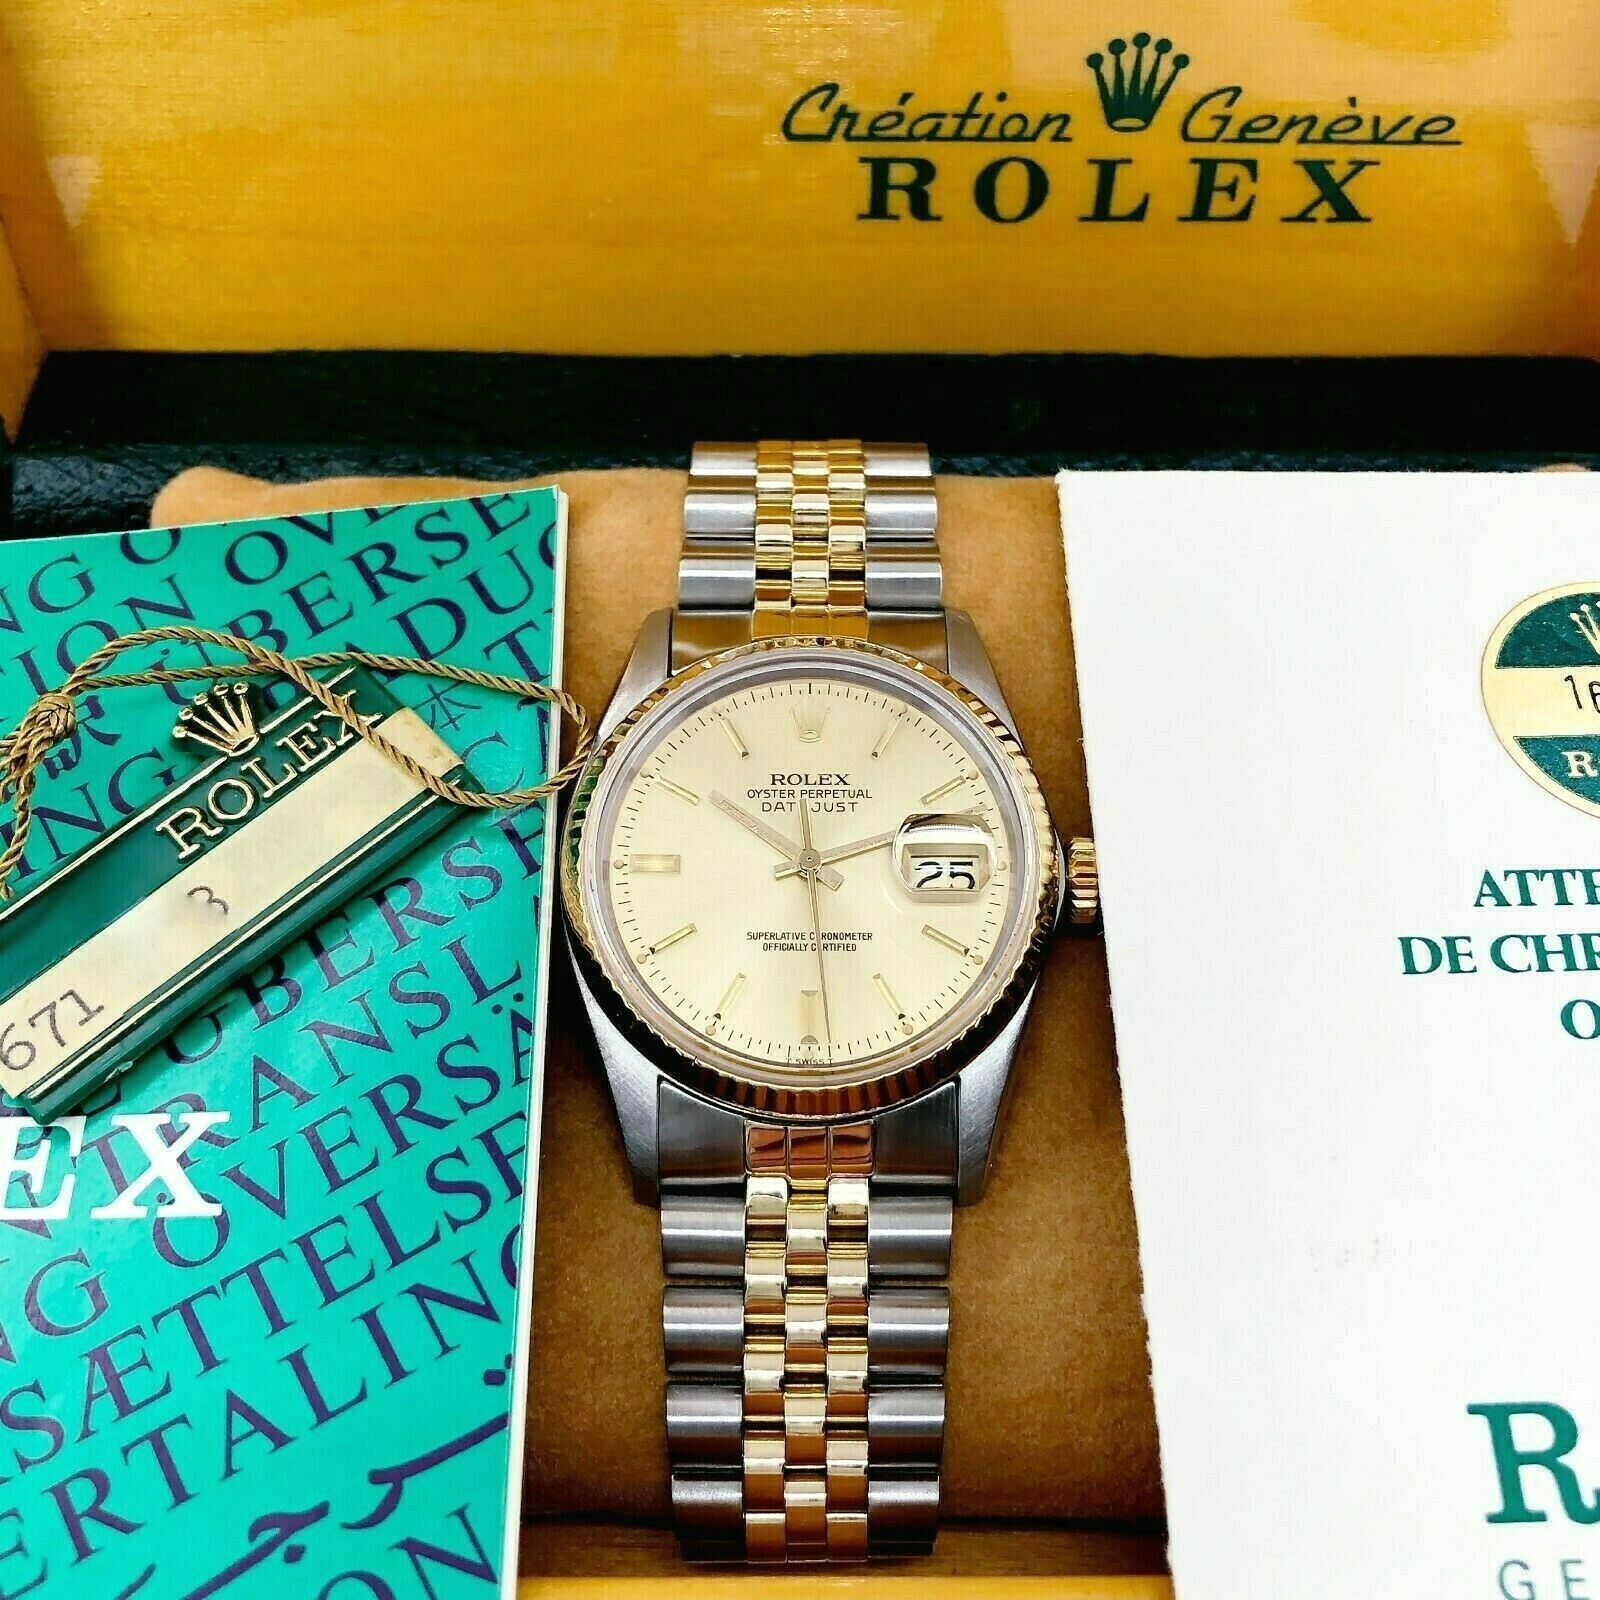 Rolex 36mm Datejust Watch 18K Yellow Gold Stainless Steel Ref 16013 Box & Papers